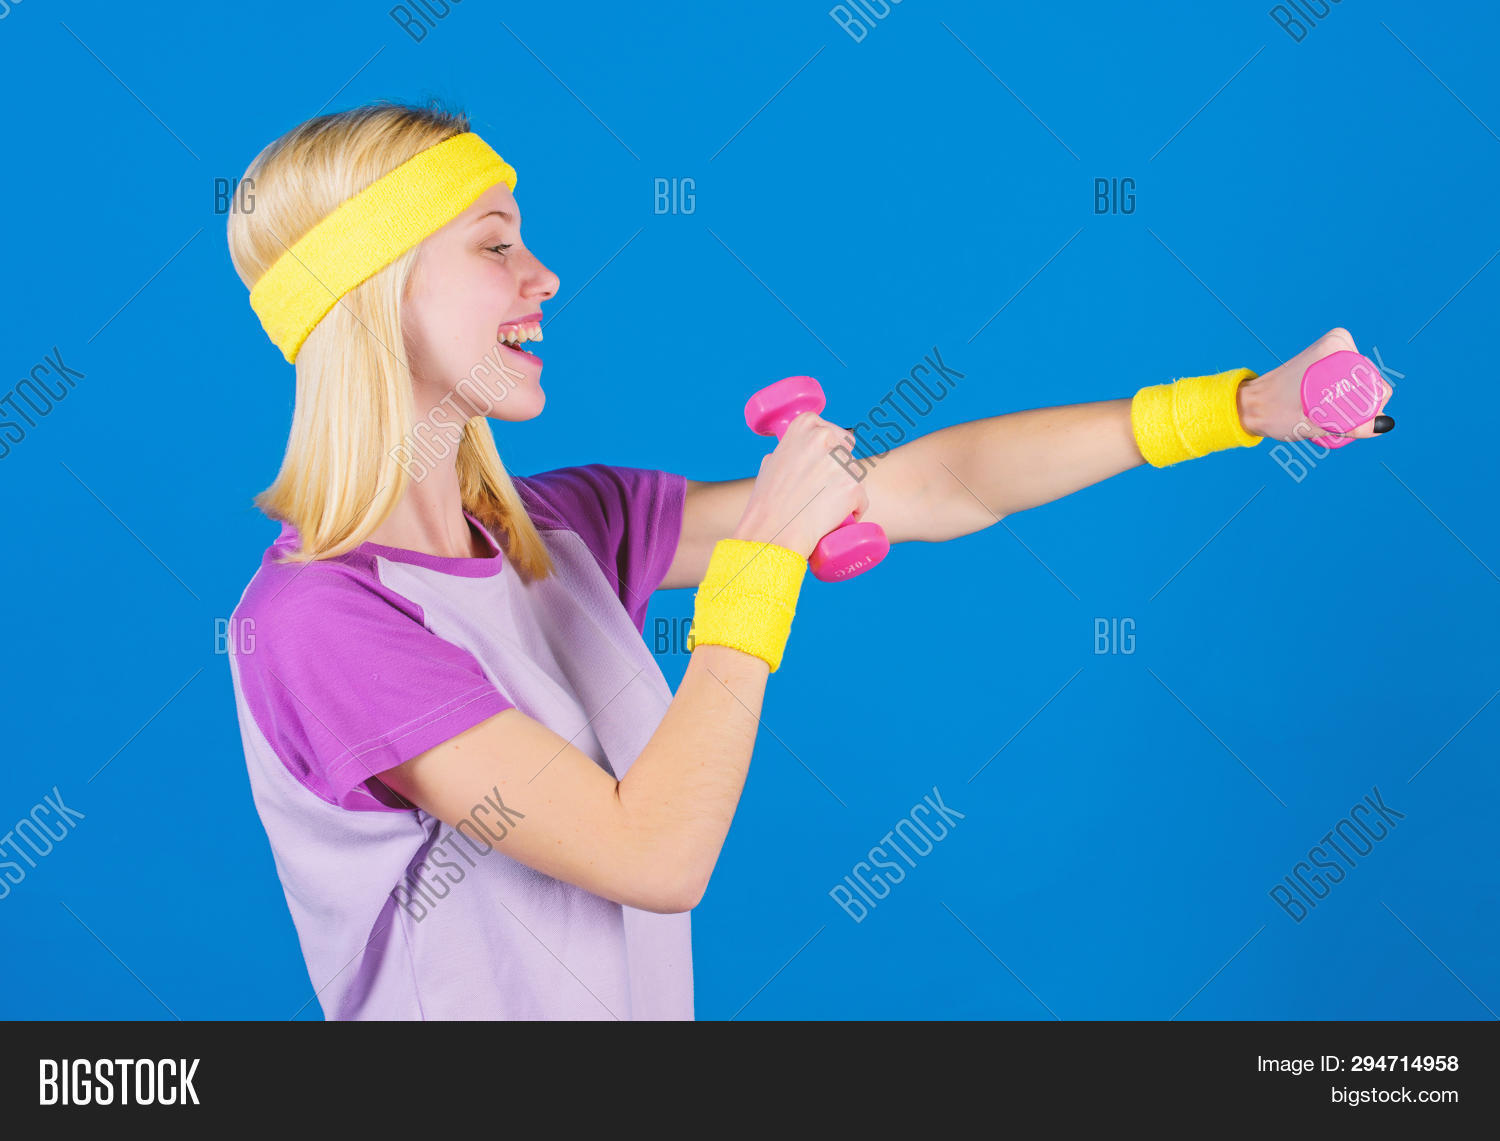 Fitness Concept  Girl Image & Photo (Free Trial) | Bigstock